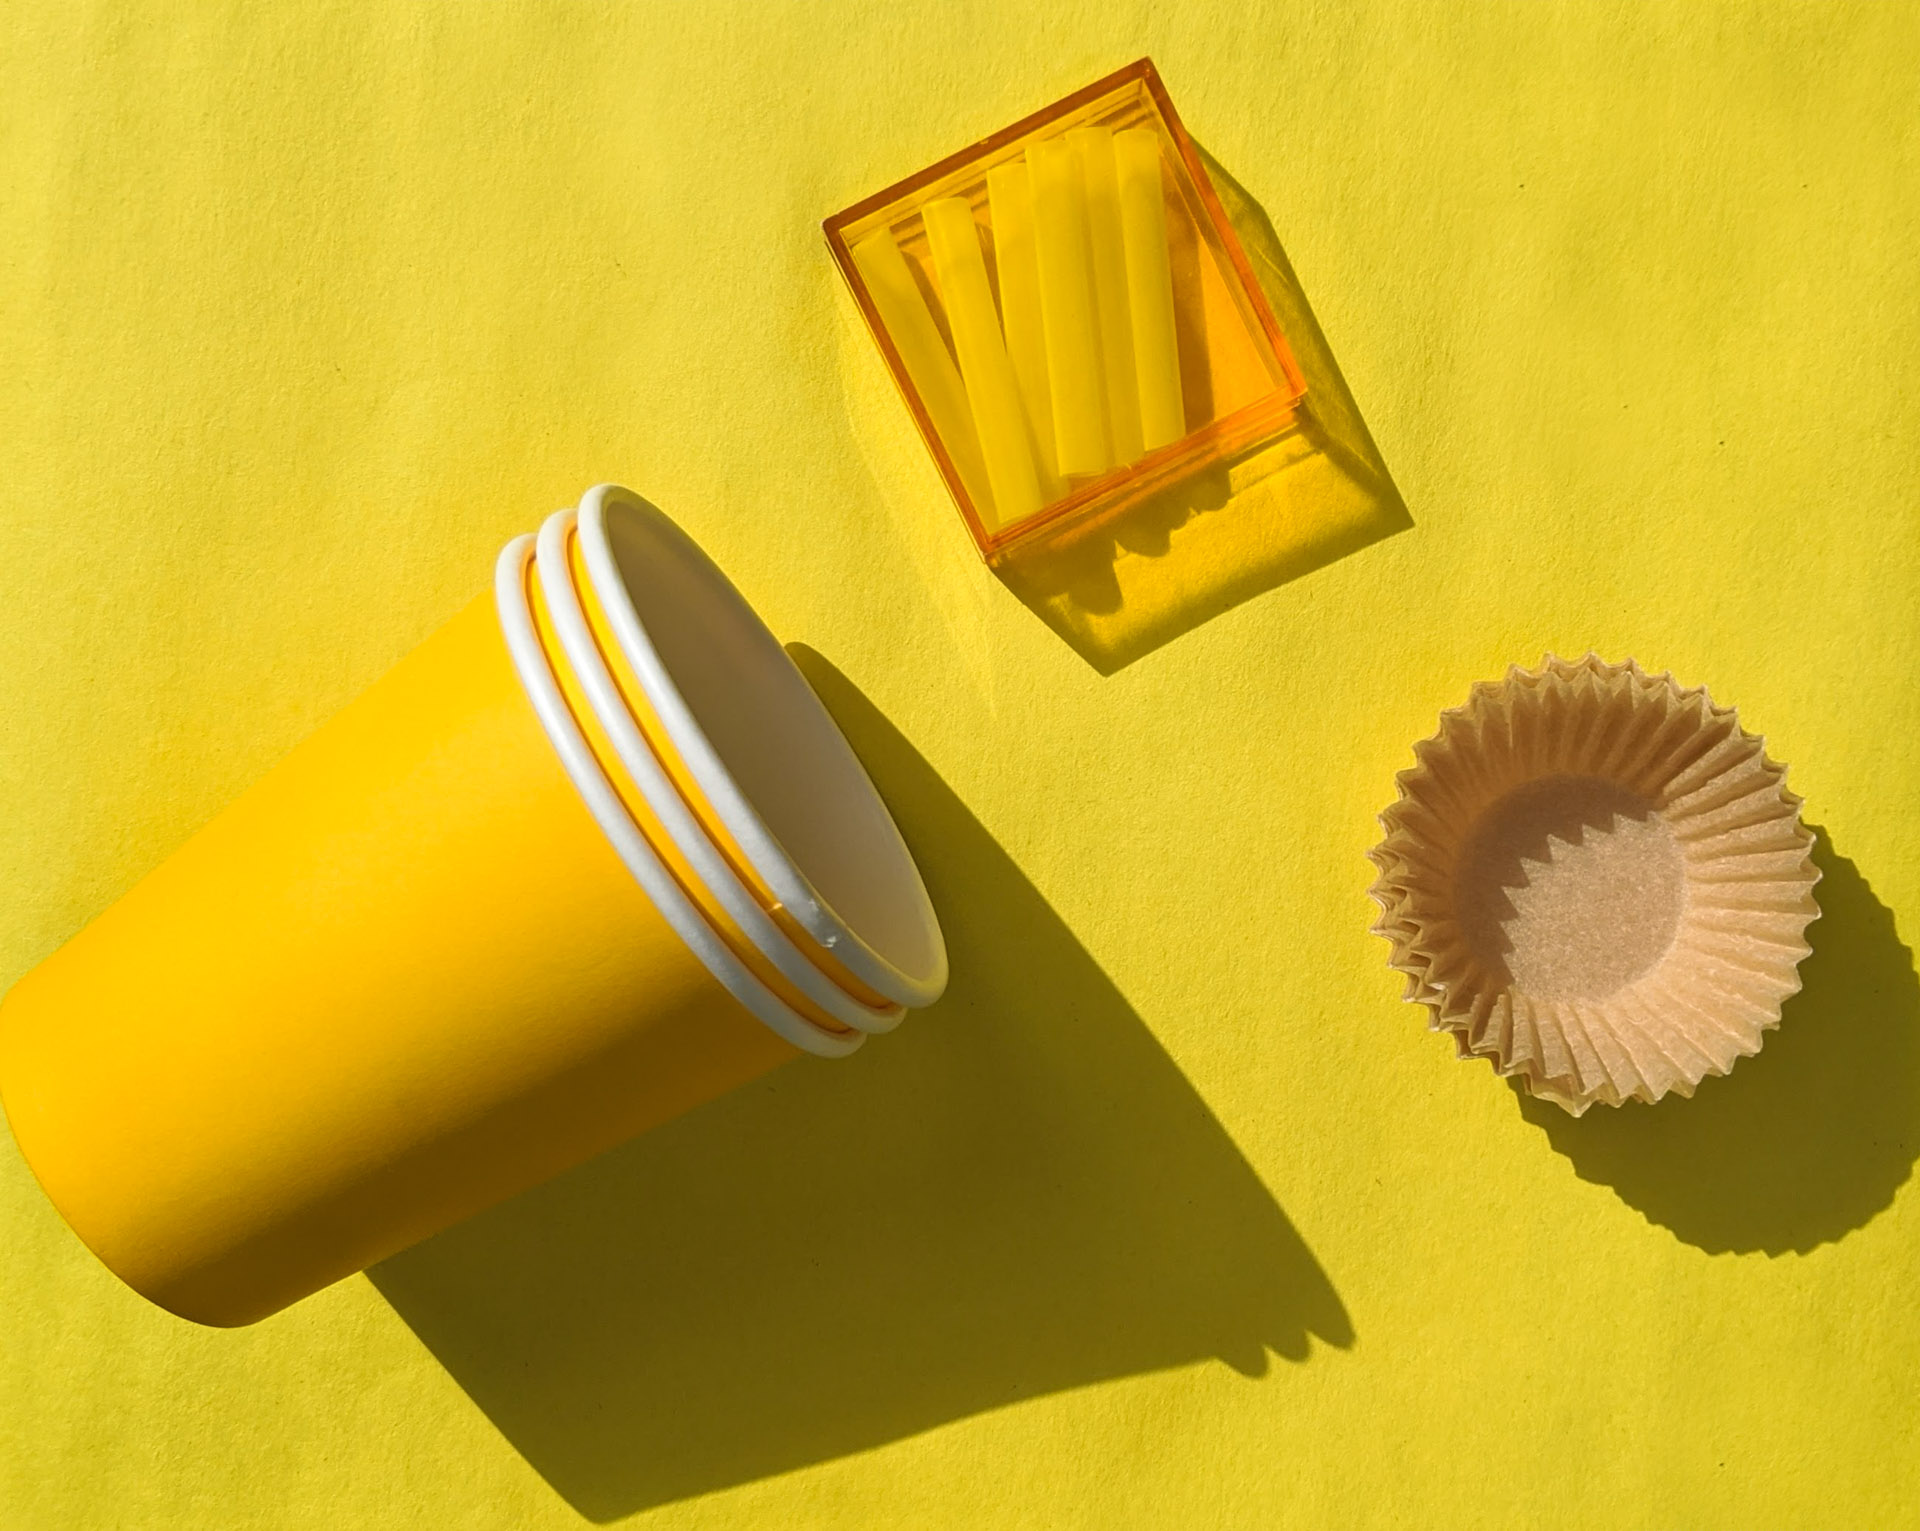 Craft supplies in shades of yellow